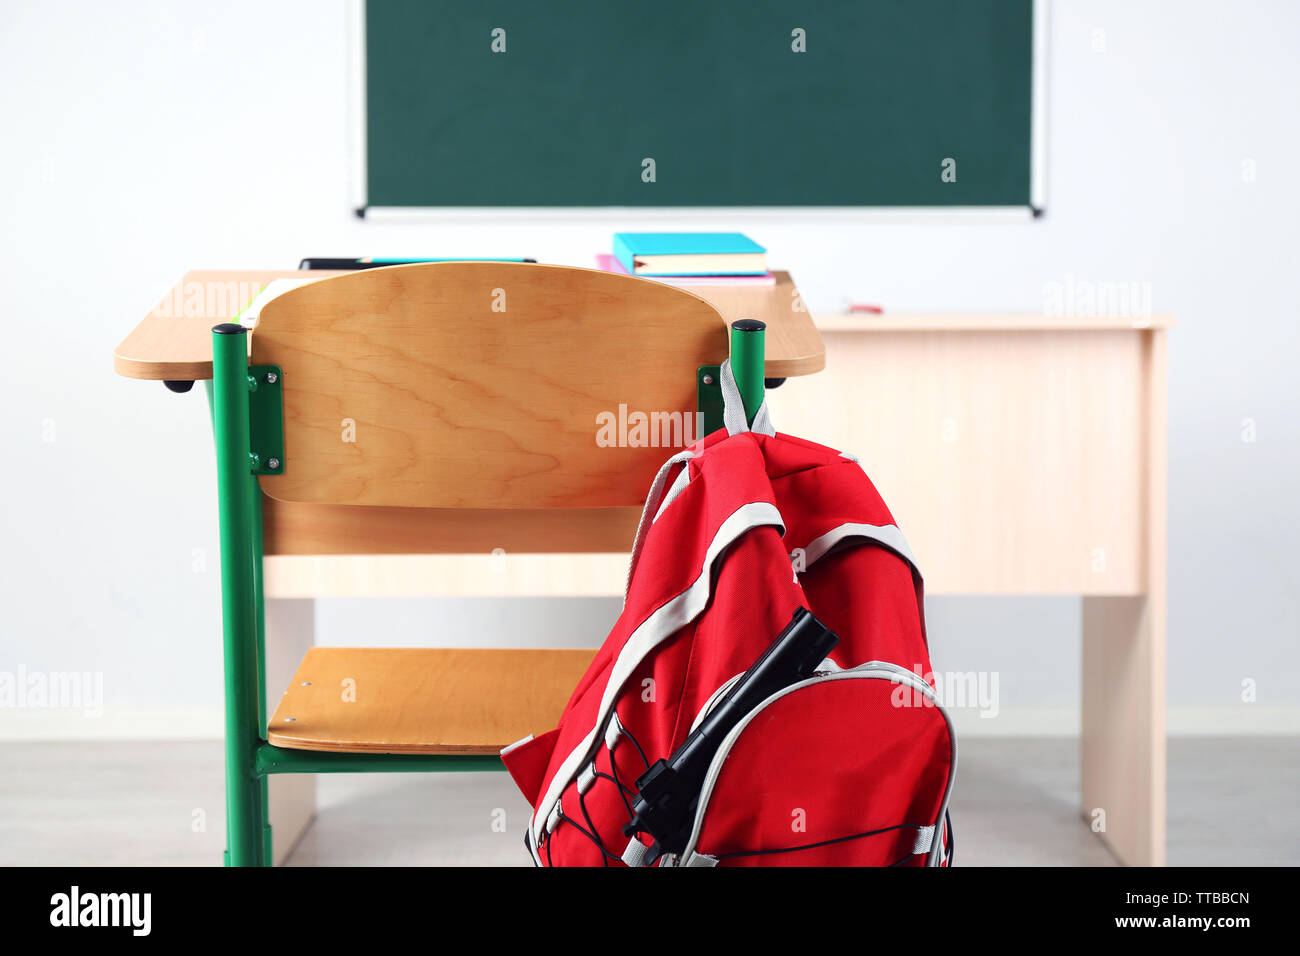 Backpack with gun in classroom, close up. Juvenile delinquency - Stock Image